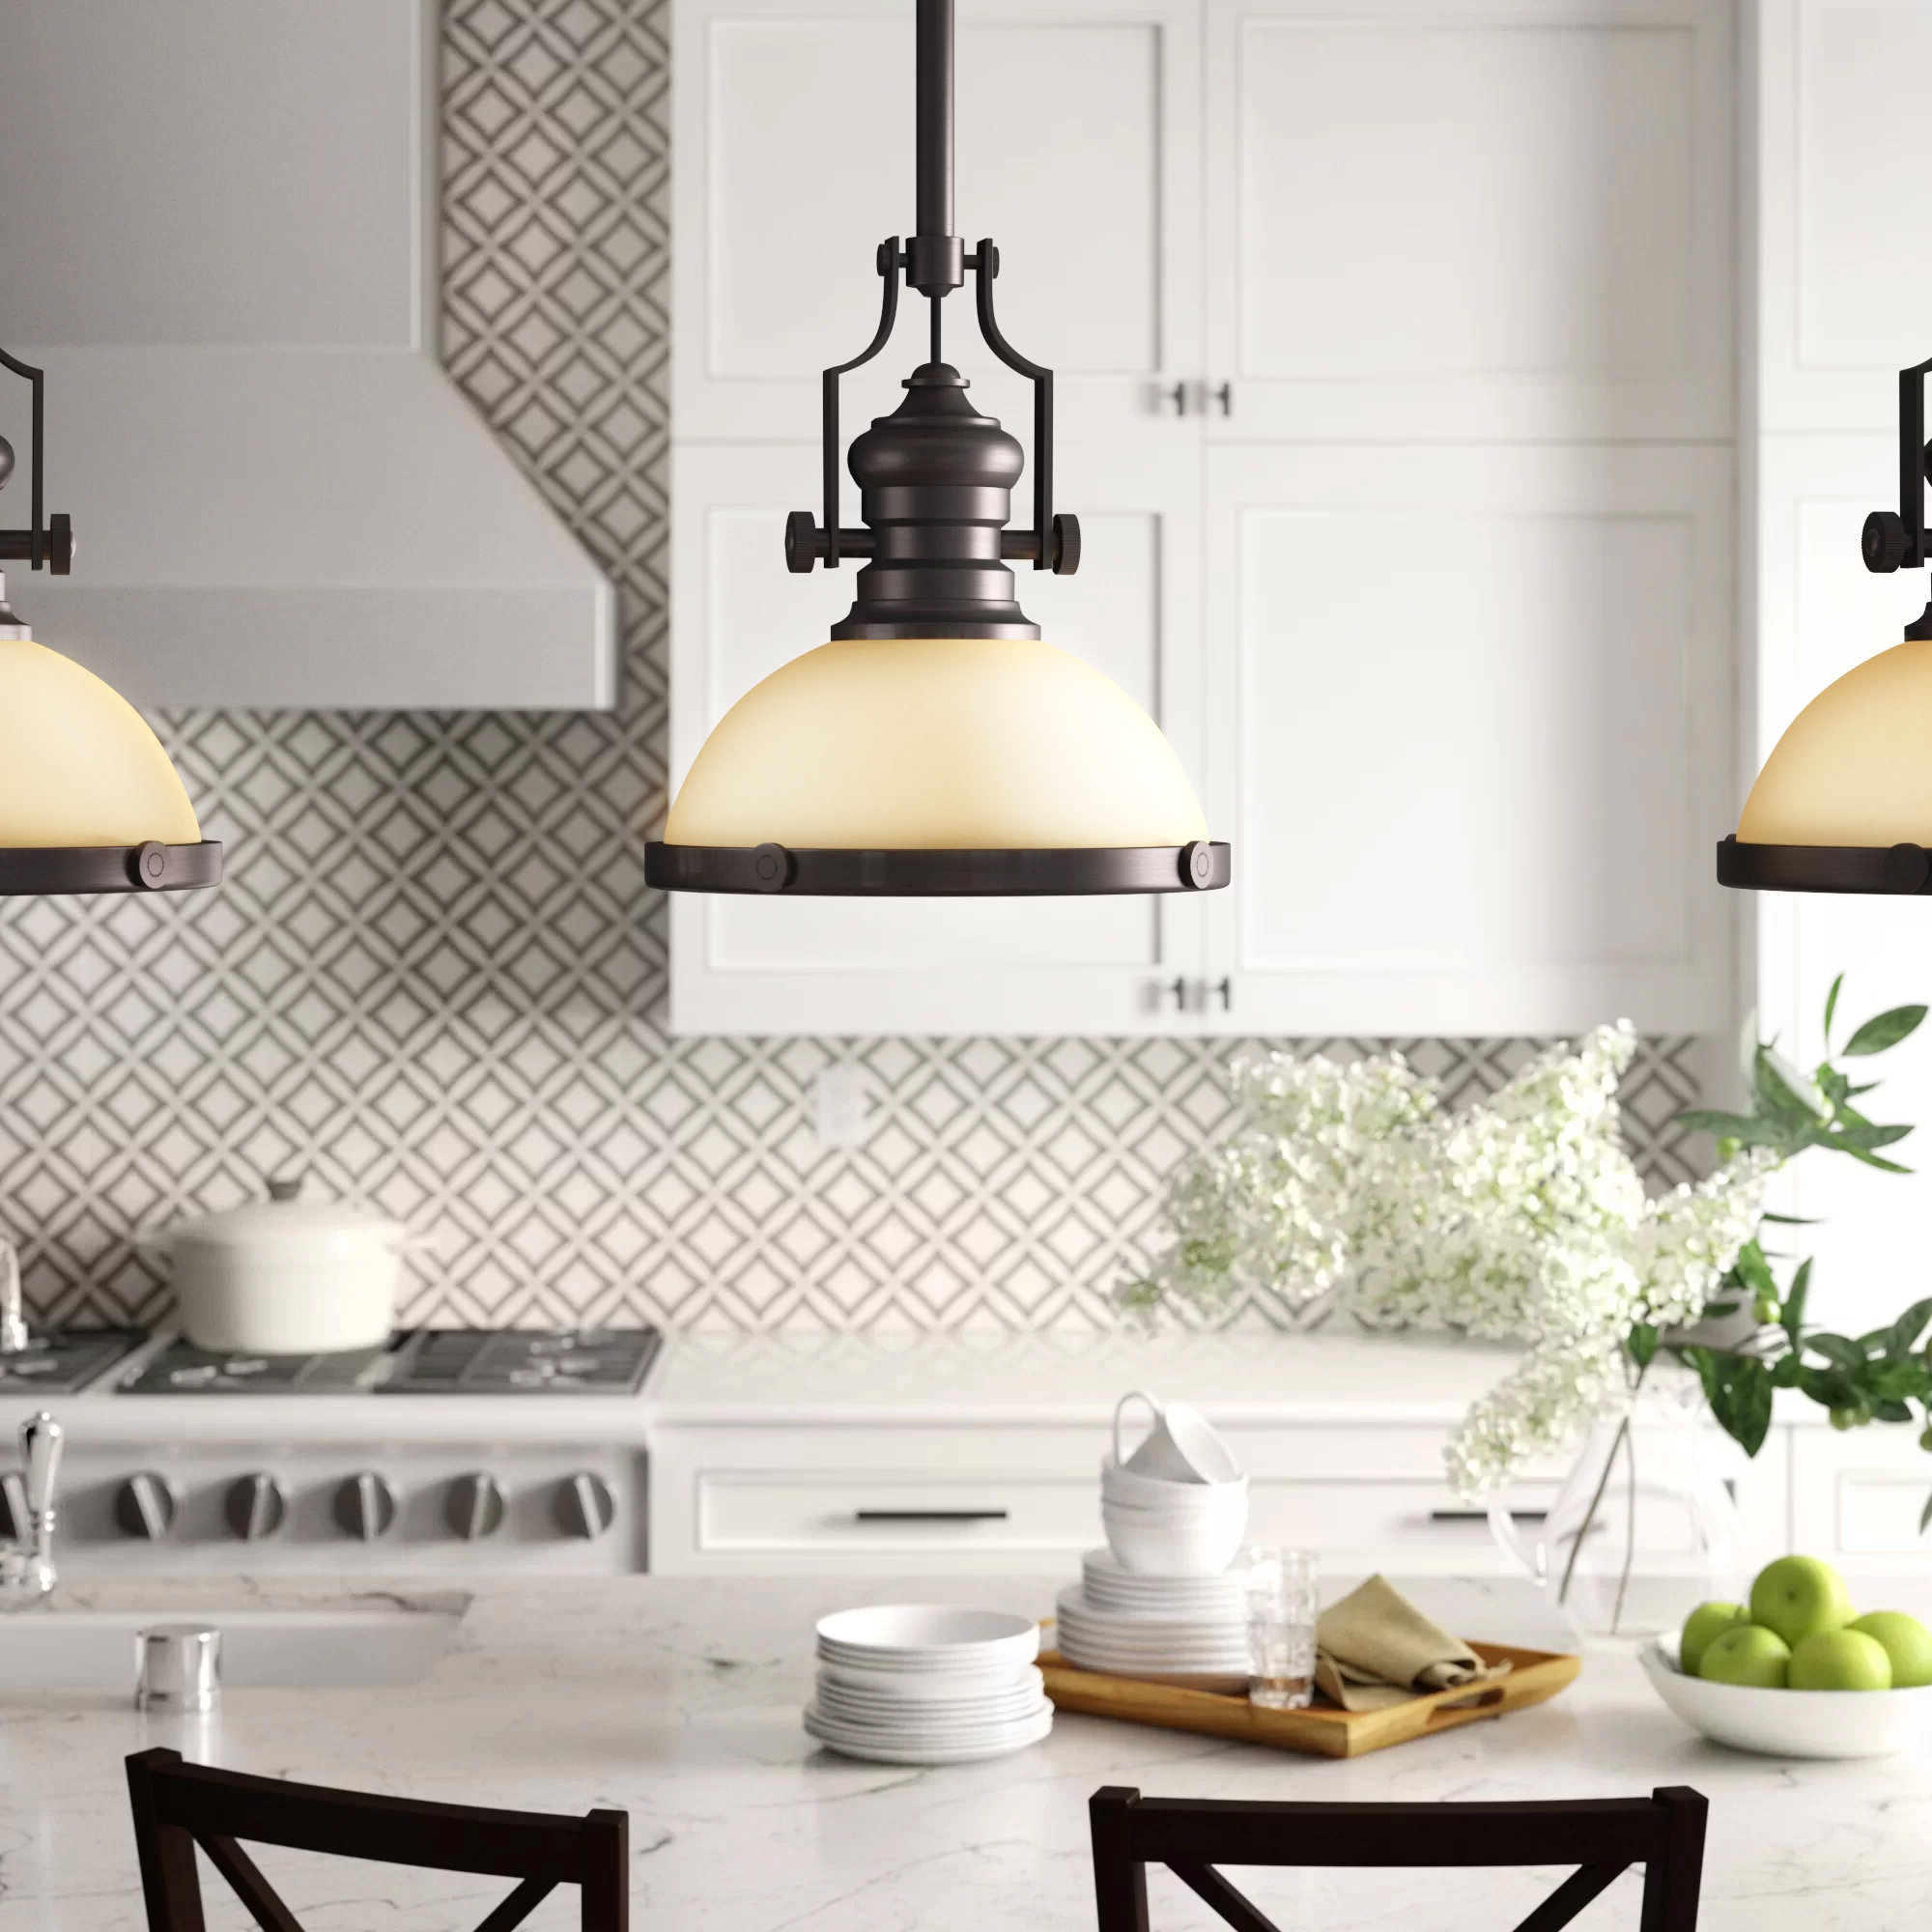 Widely Used Abernathy 1 Light Dome Pendants In Breakwater Bay Priston 1 Light Single Dome Pendant (View 19 of 20)